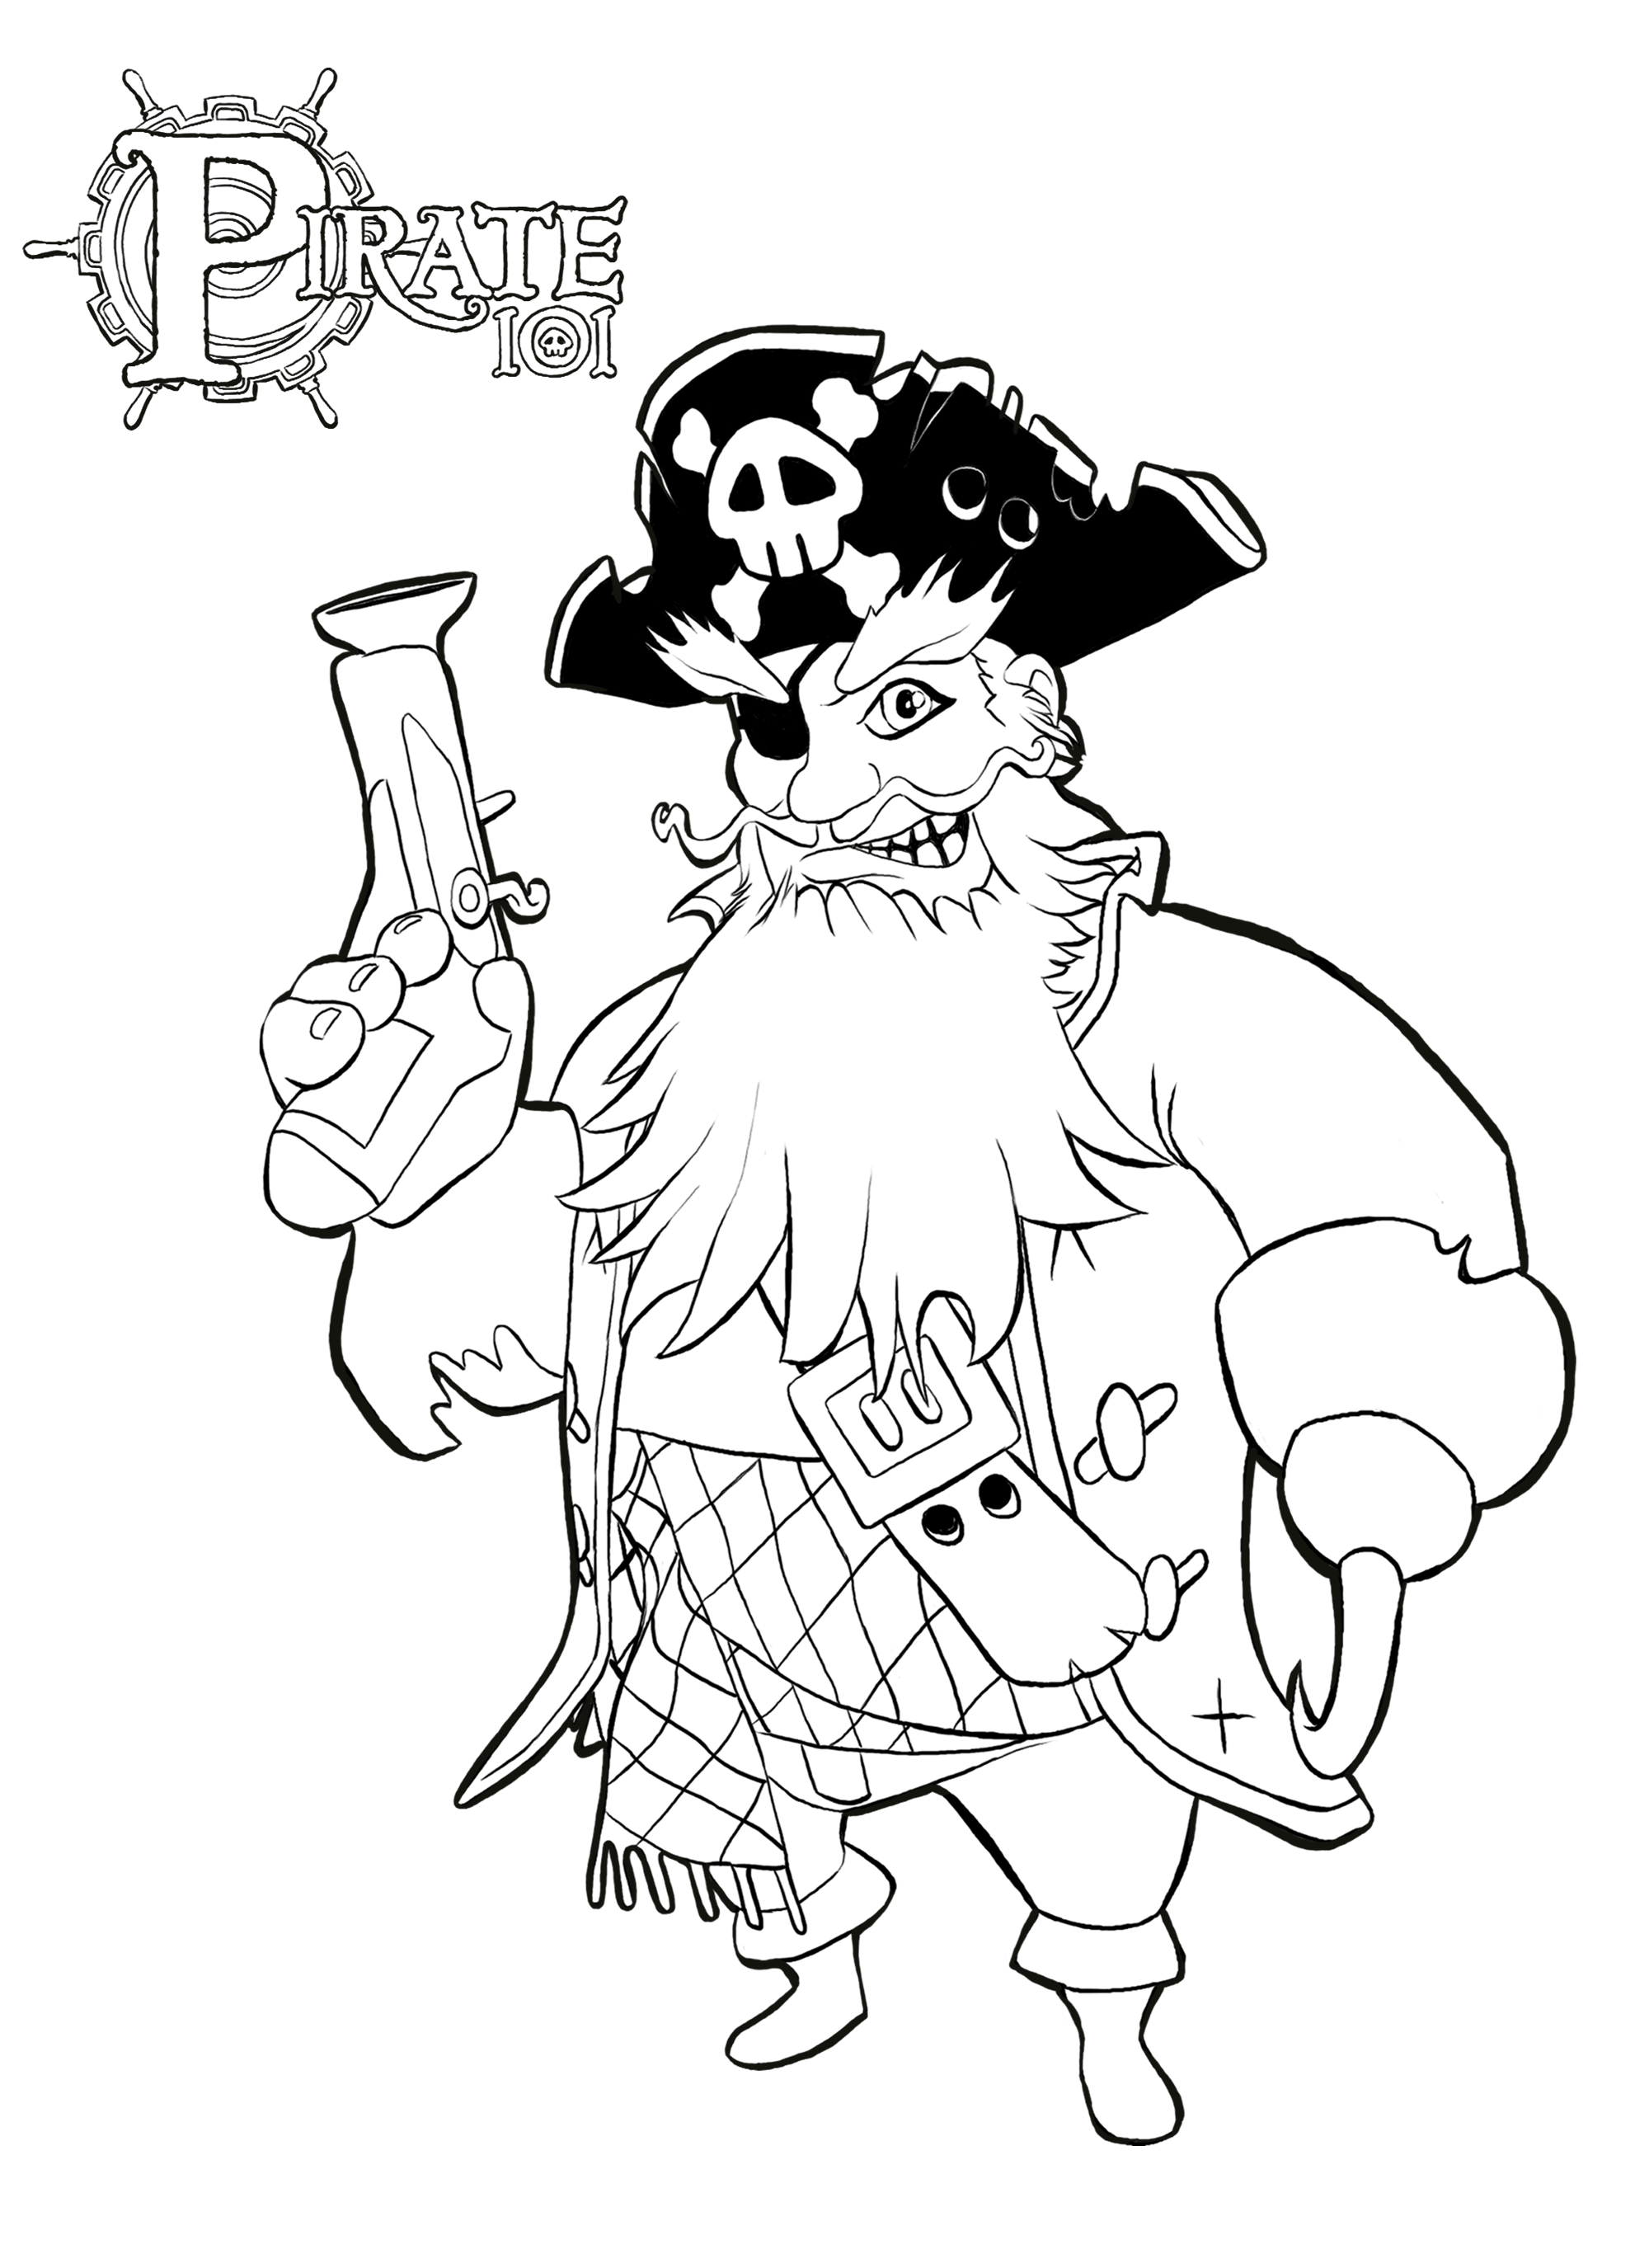 pirate coloring pages pirate101 free game